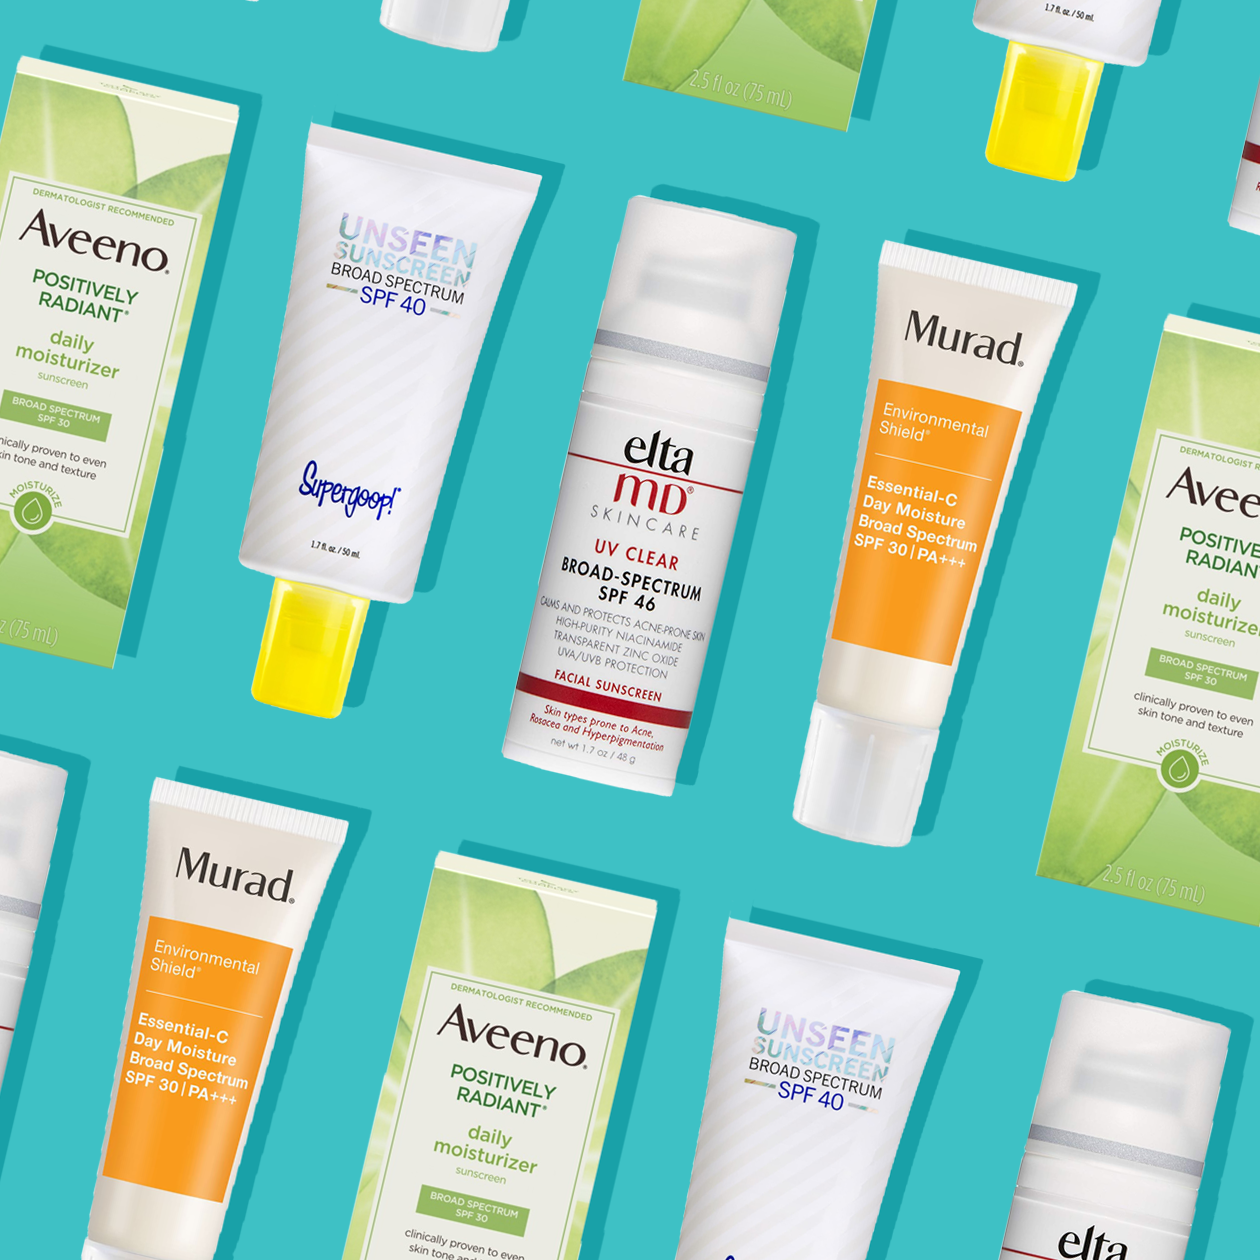 10 Best Sunscreens for Darker Skin Tones, According to Dermatologists of Color